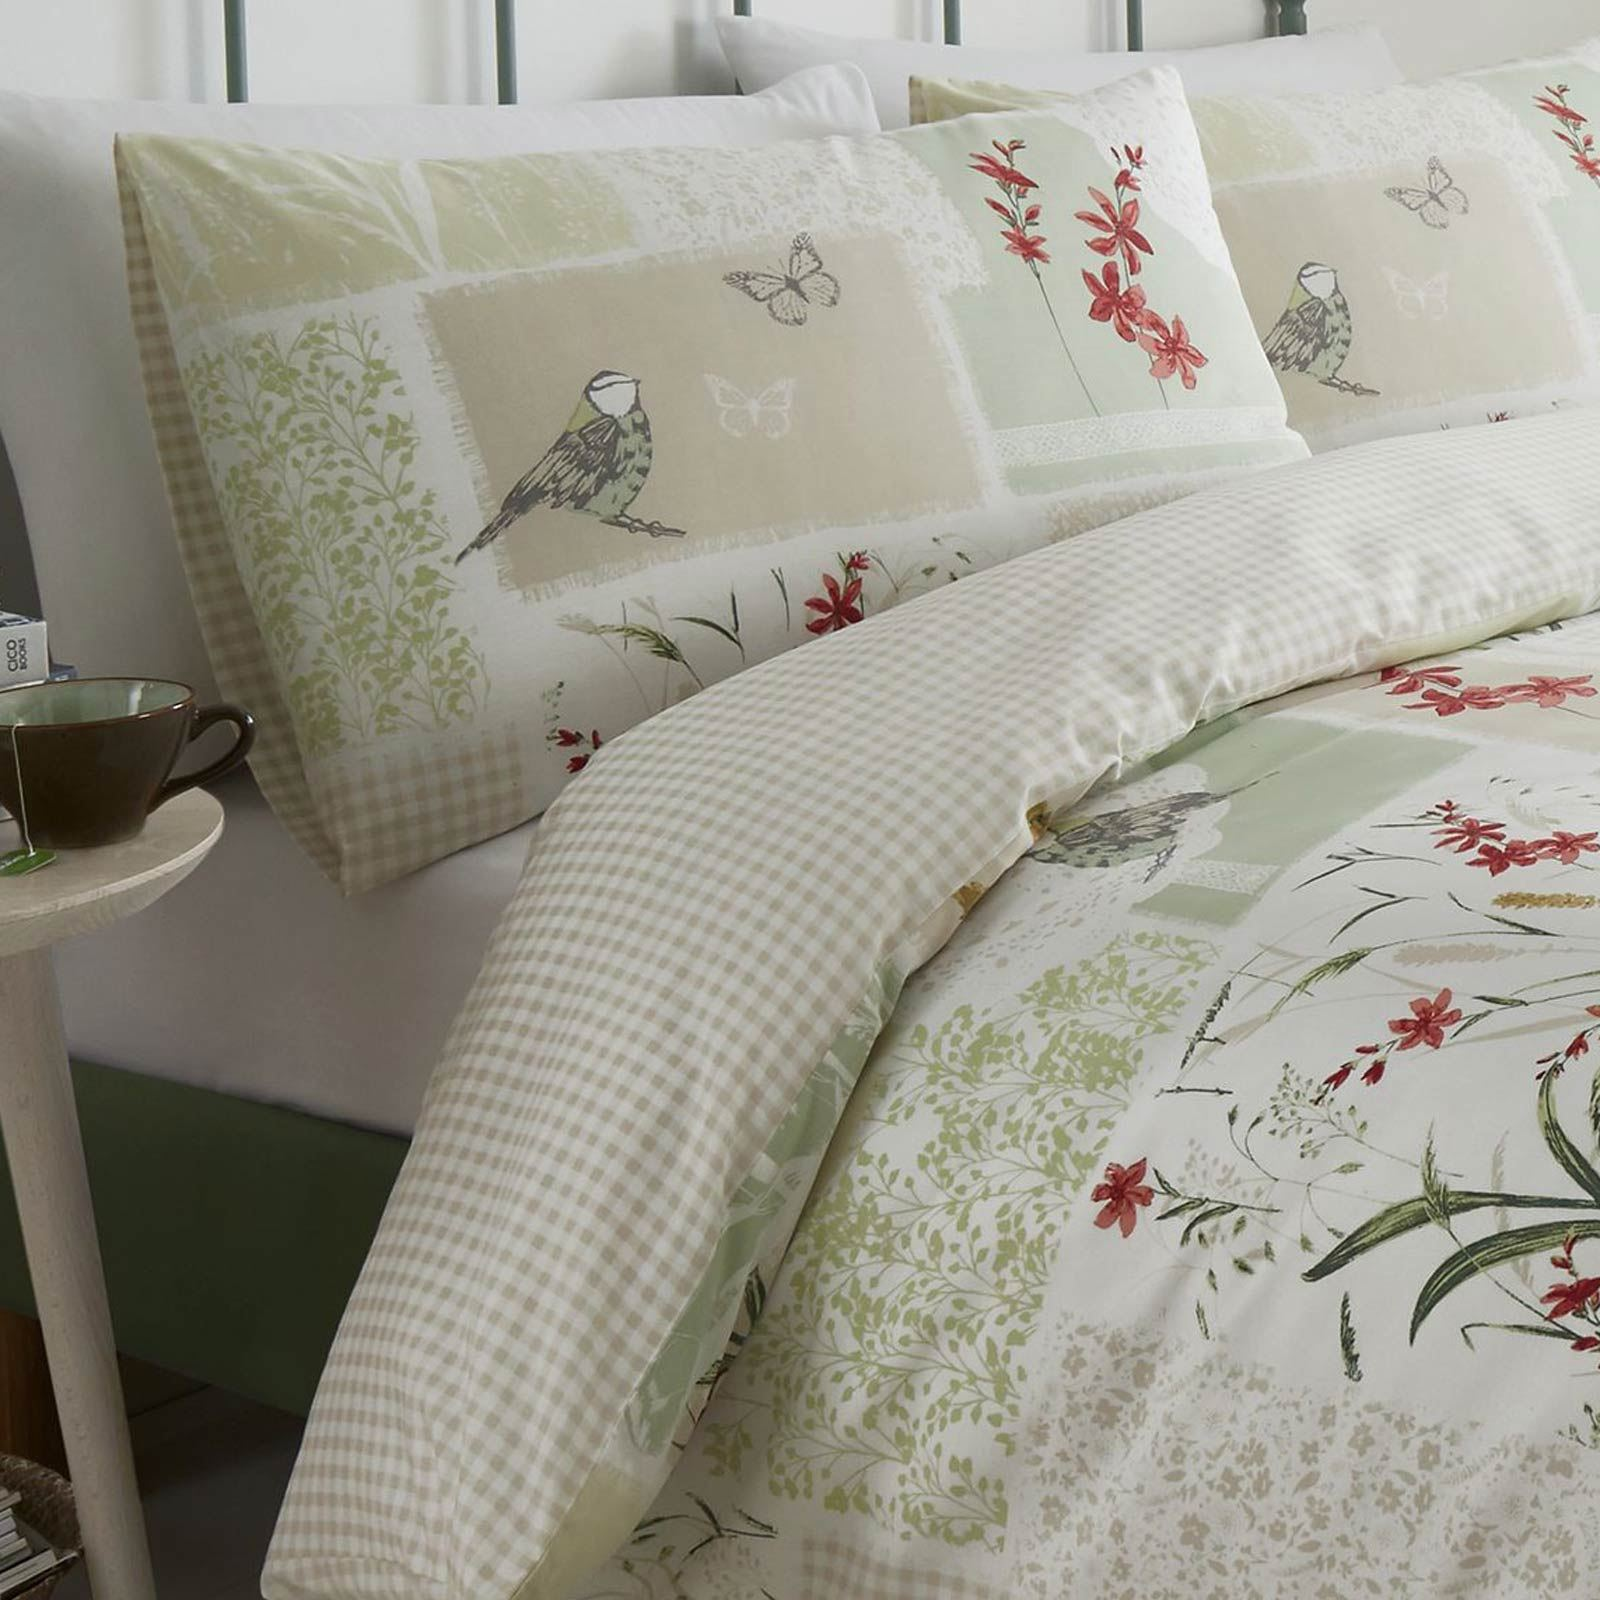 Green Duvet Covers Dionne Floral Patchwork Printed Easy Care Quilt Bedding Sets